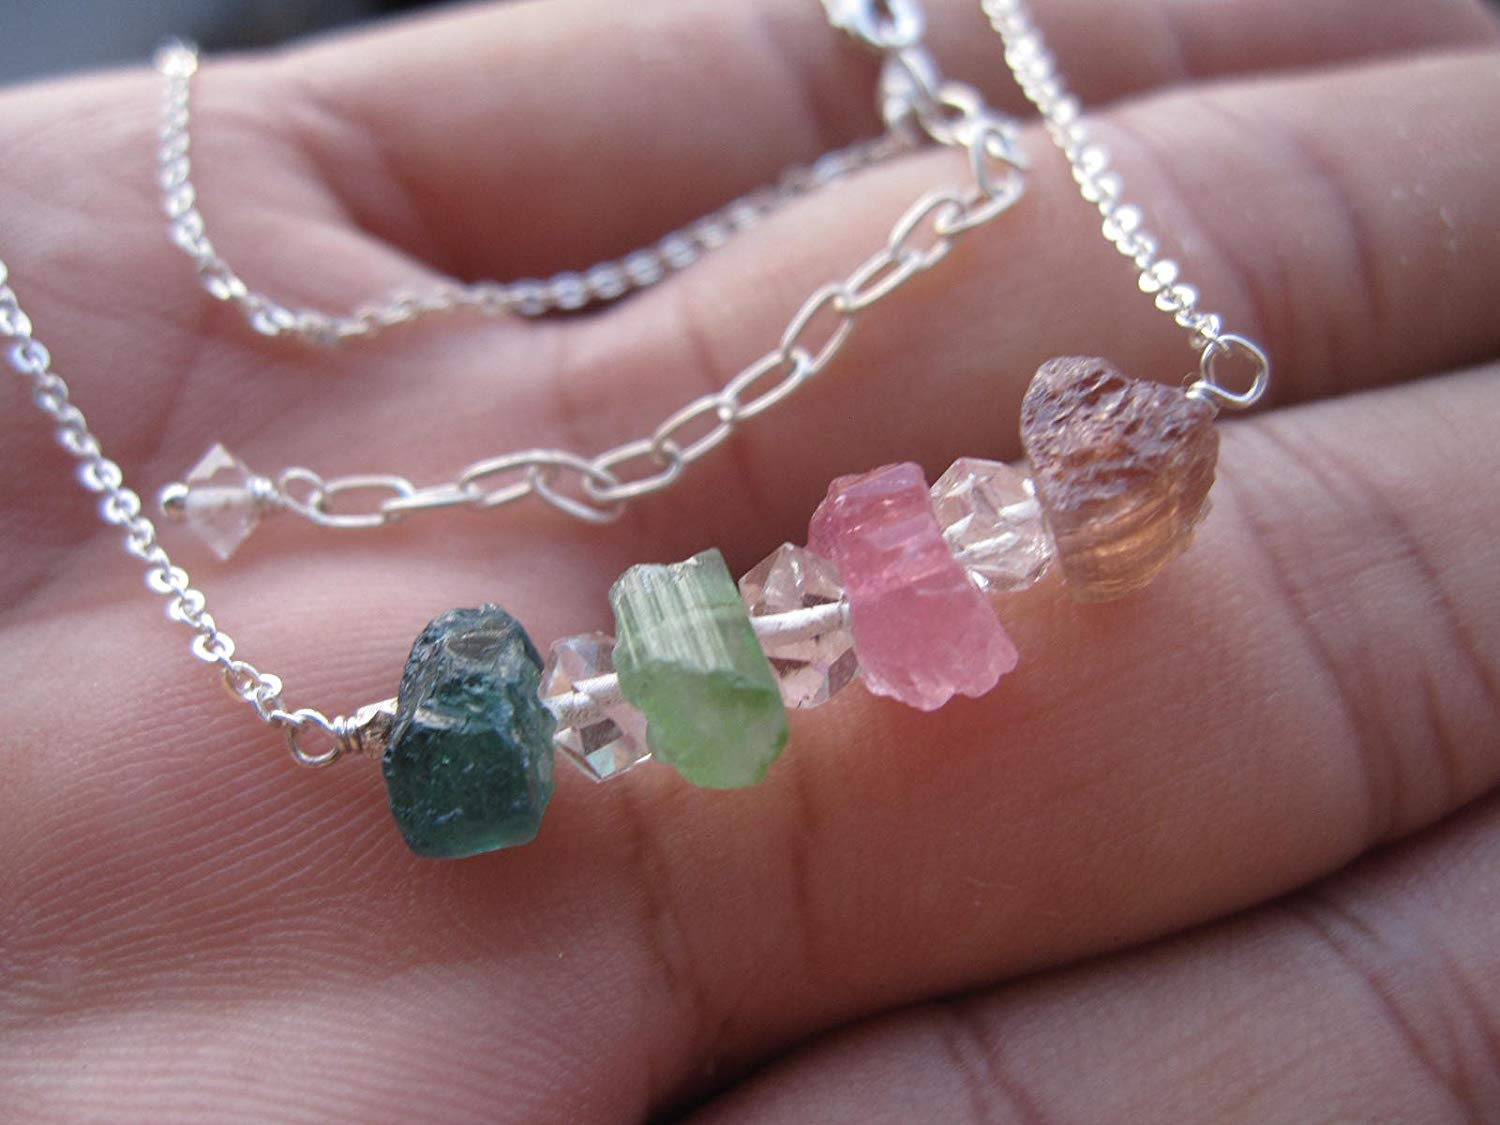 "Raw Tourmaline necklace,Multi color Tourmaline,Herkimer diamond necklace,925 Sterling Silver Chain extender 1 inch - Size 16"" NTH"